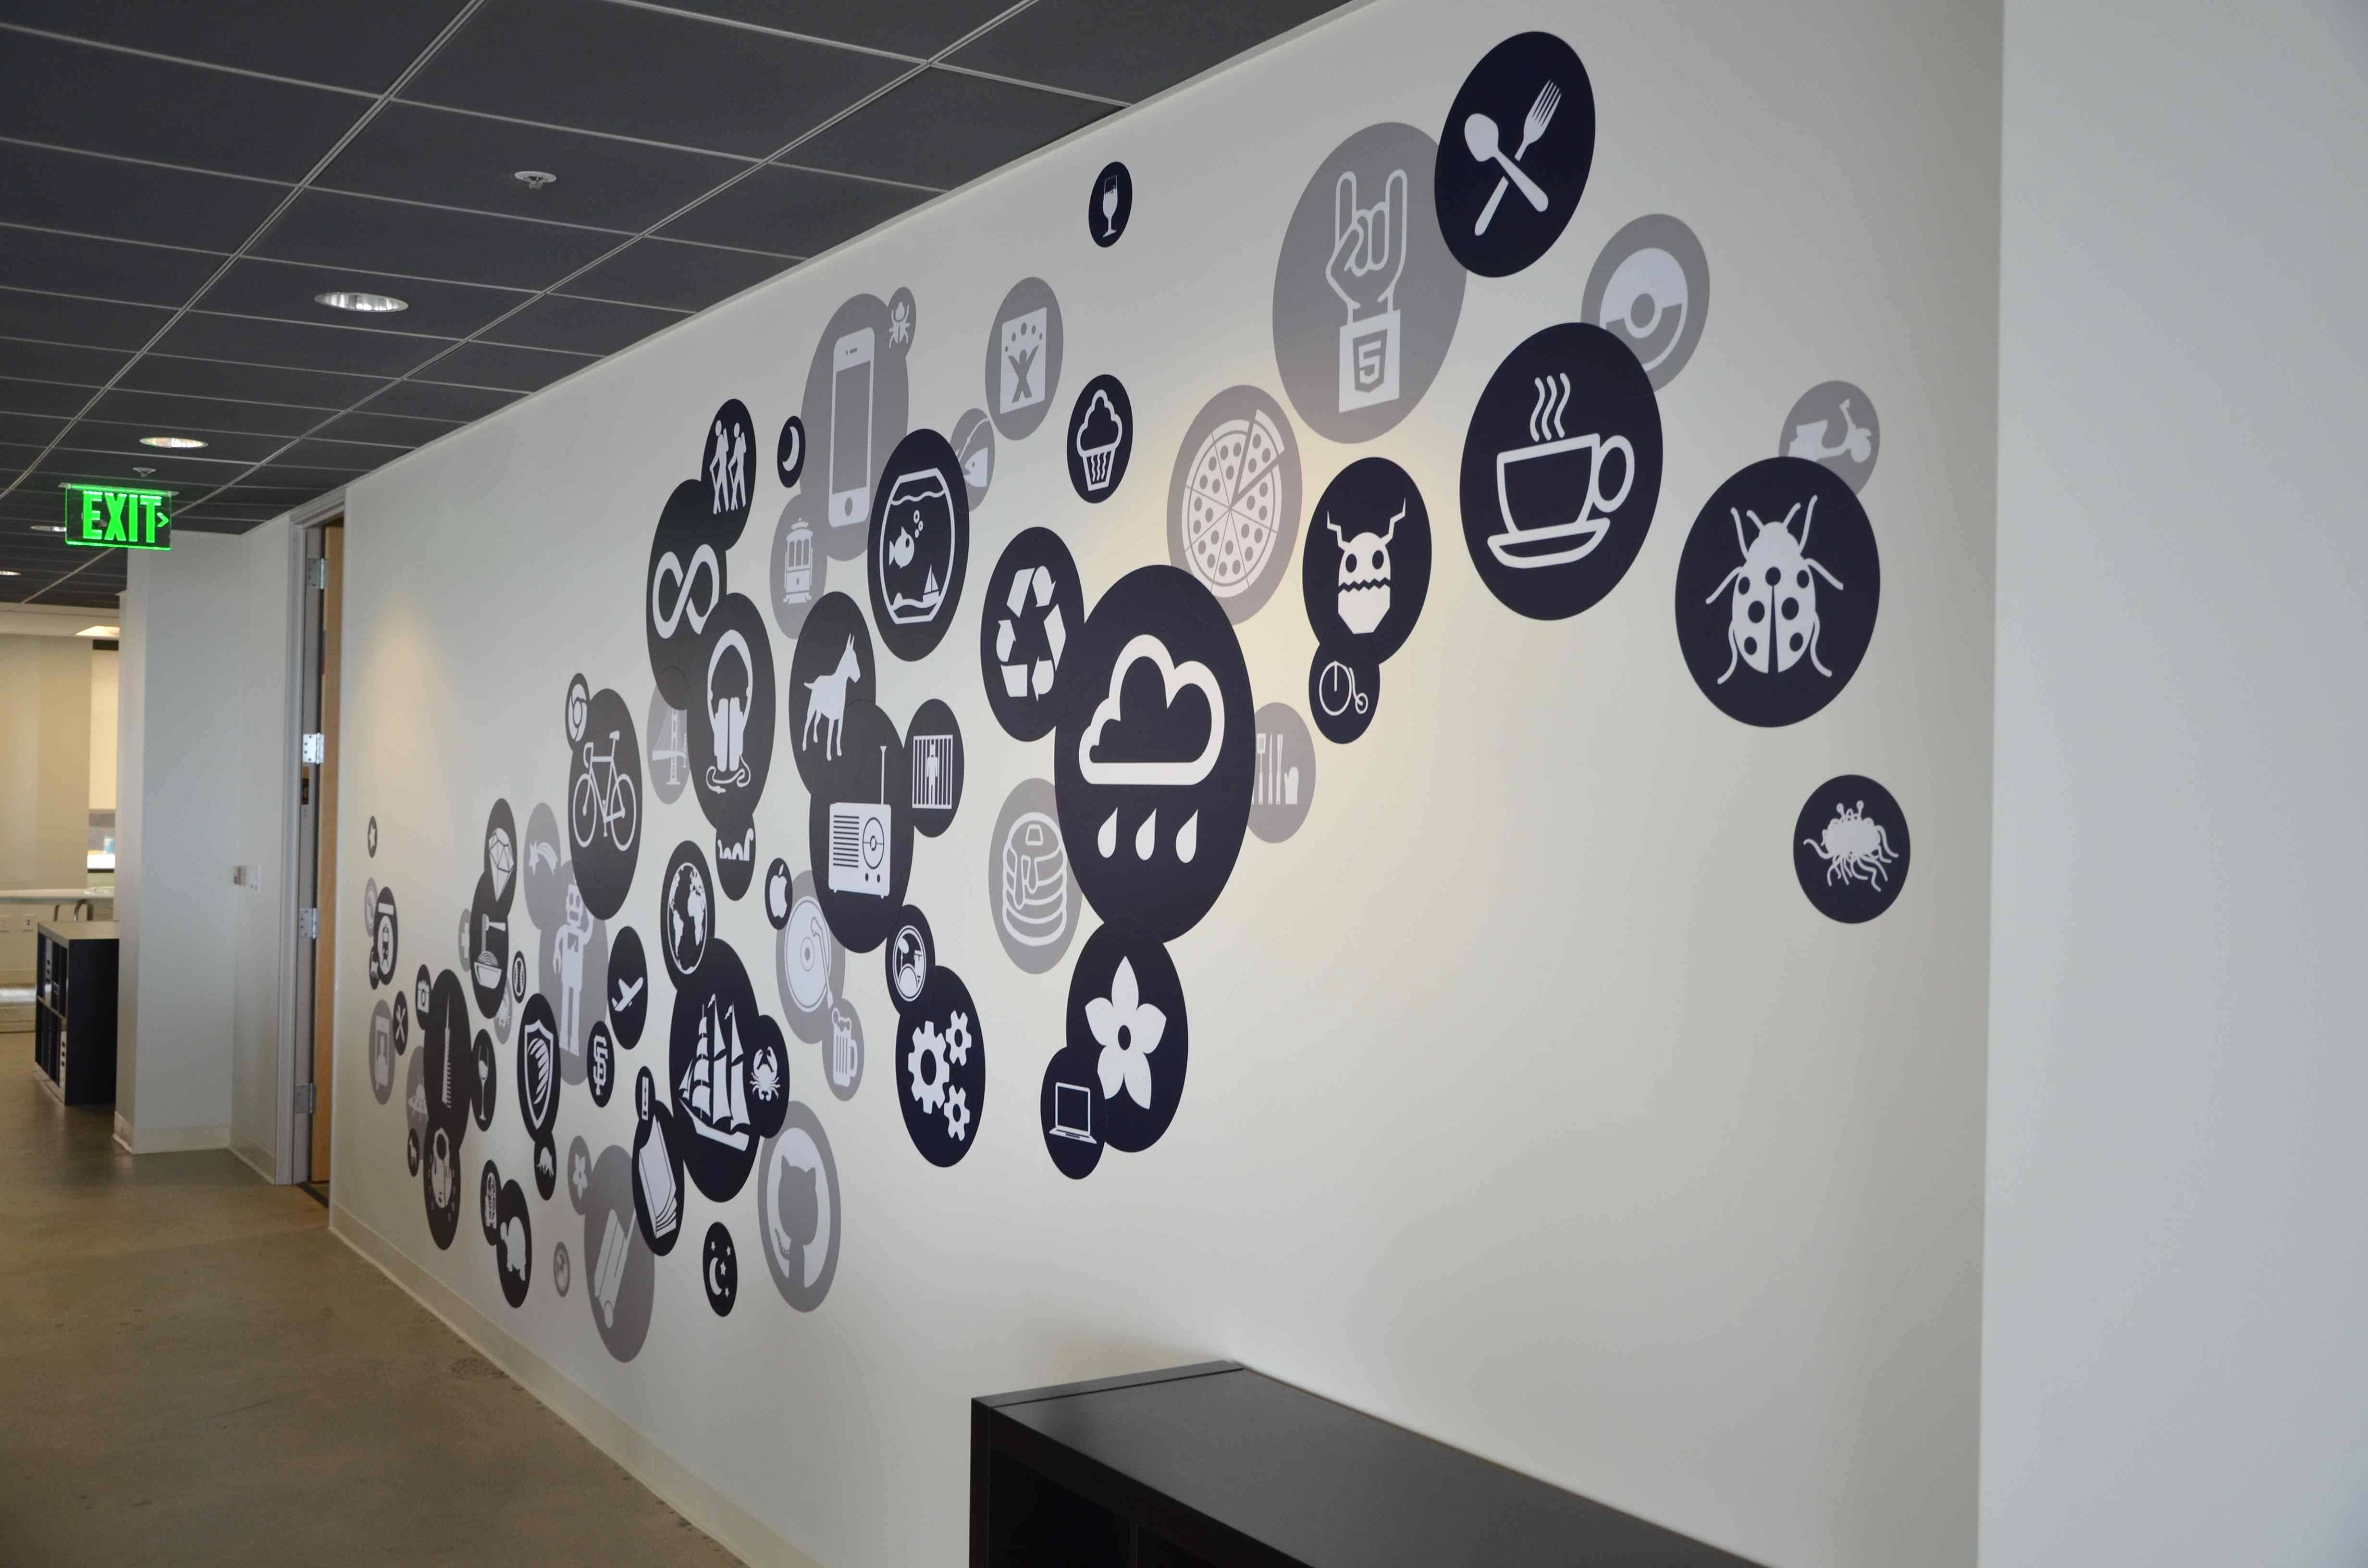 Graphic Design Wall Art | Wallartideas Intended For Most Recently Released Graphic Design Wall Art (View 11 of 20)